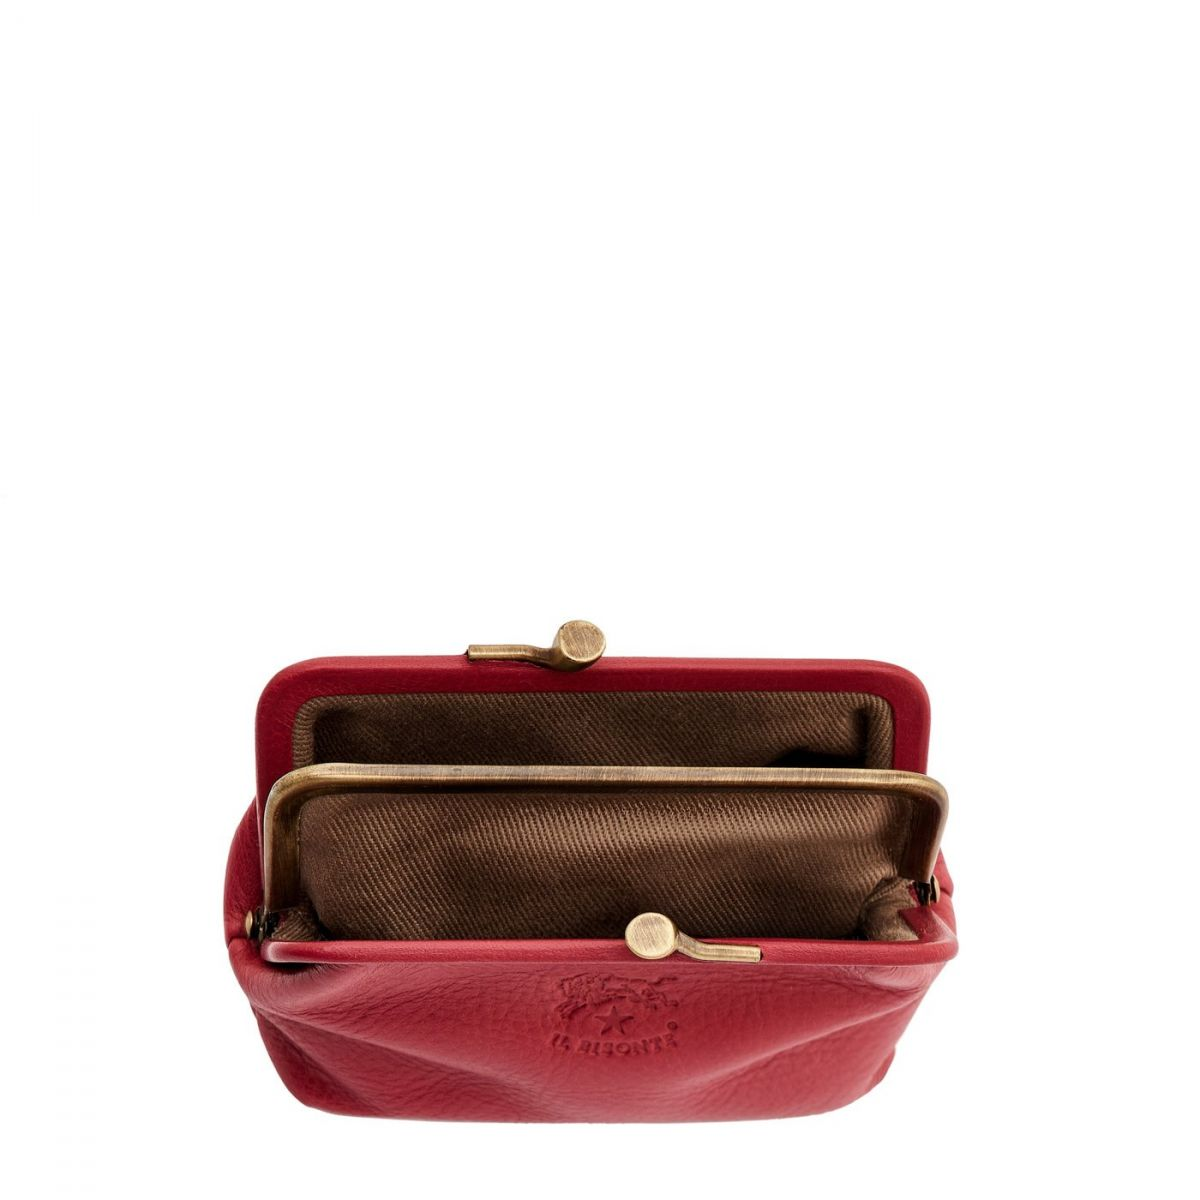 Women's Coin Purse  in Cowhide Leather SCP005 color Sumac | Details